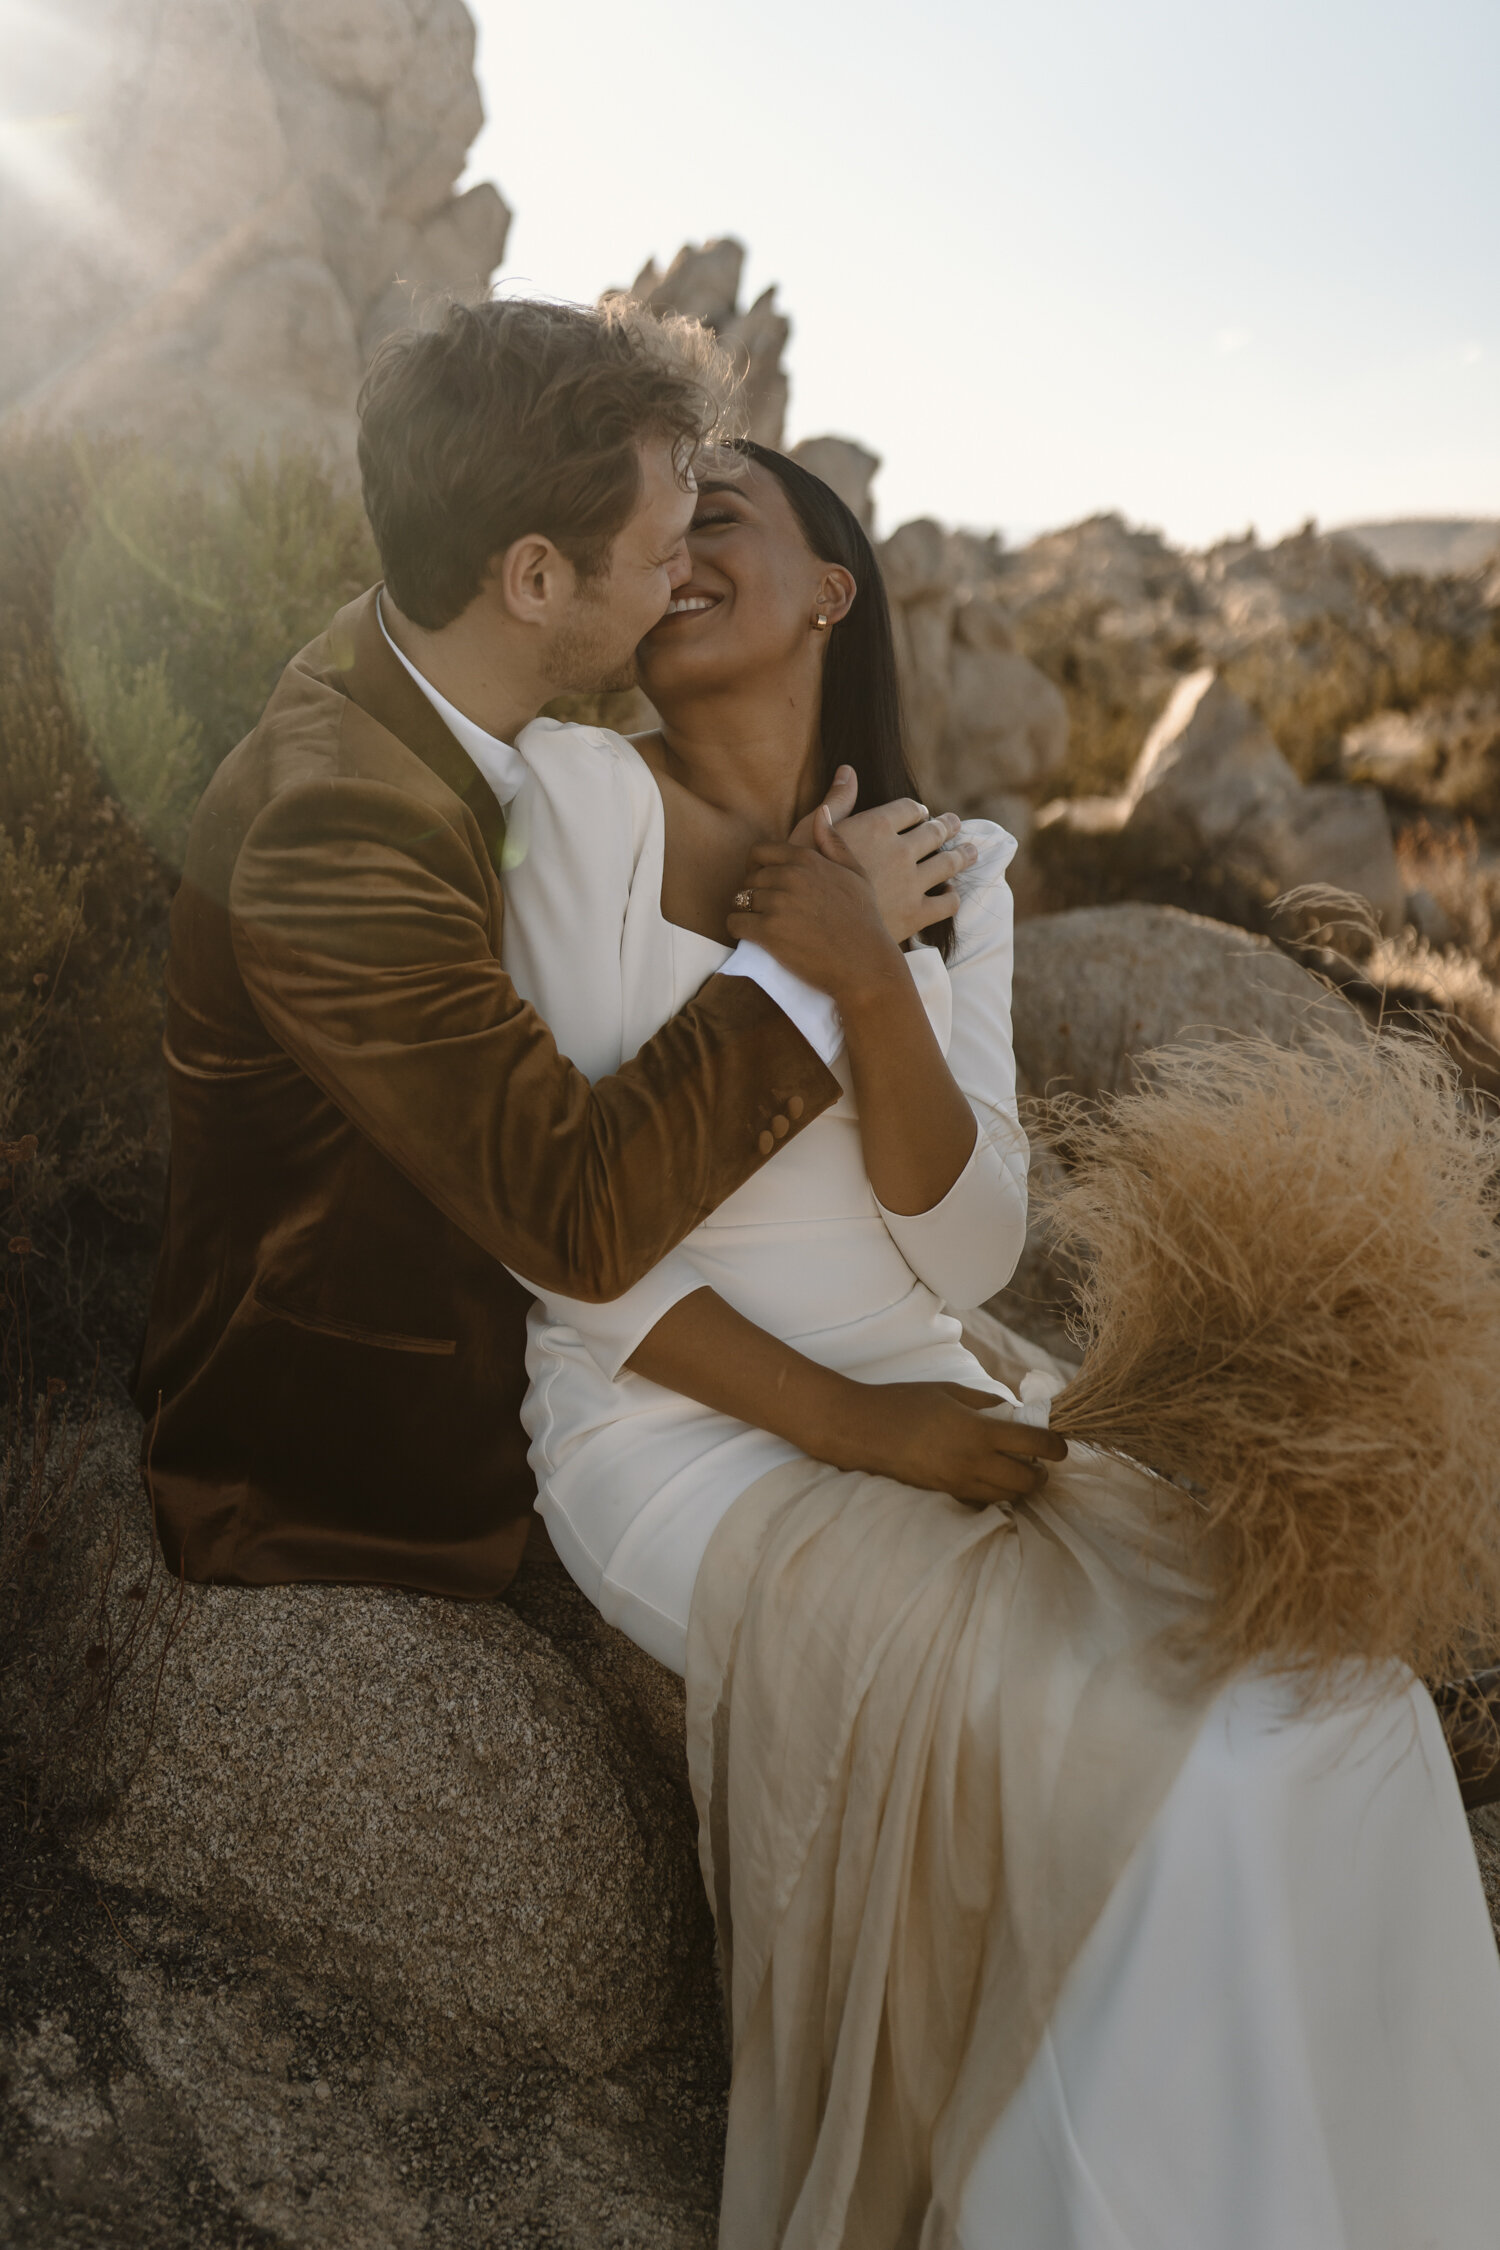 Bride and Groom portraits at their SoCal elopement by Kayli LaFon Photography